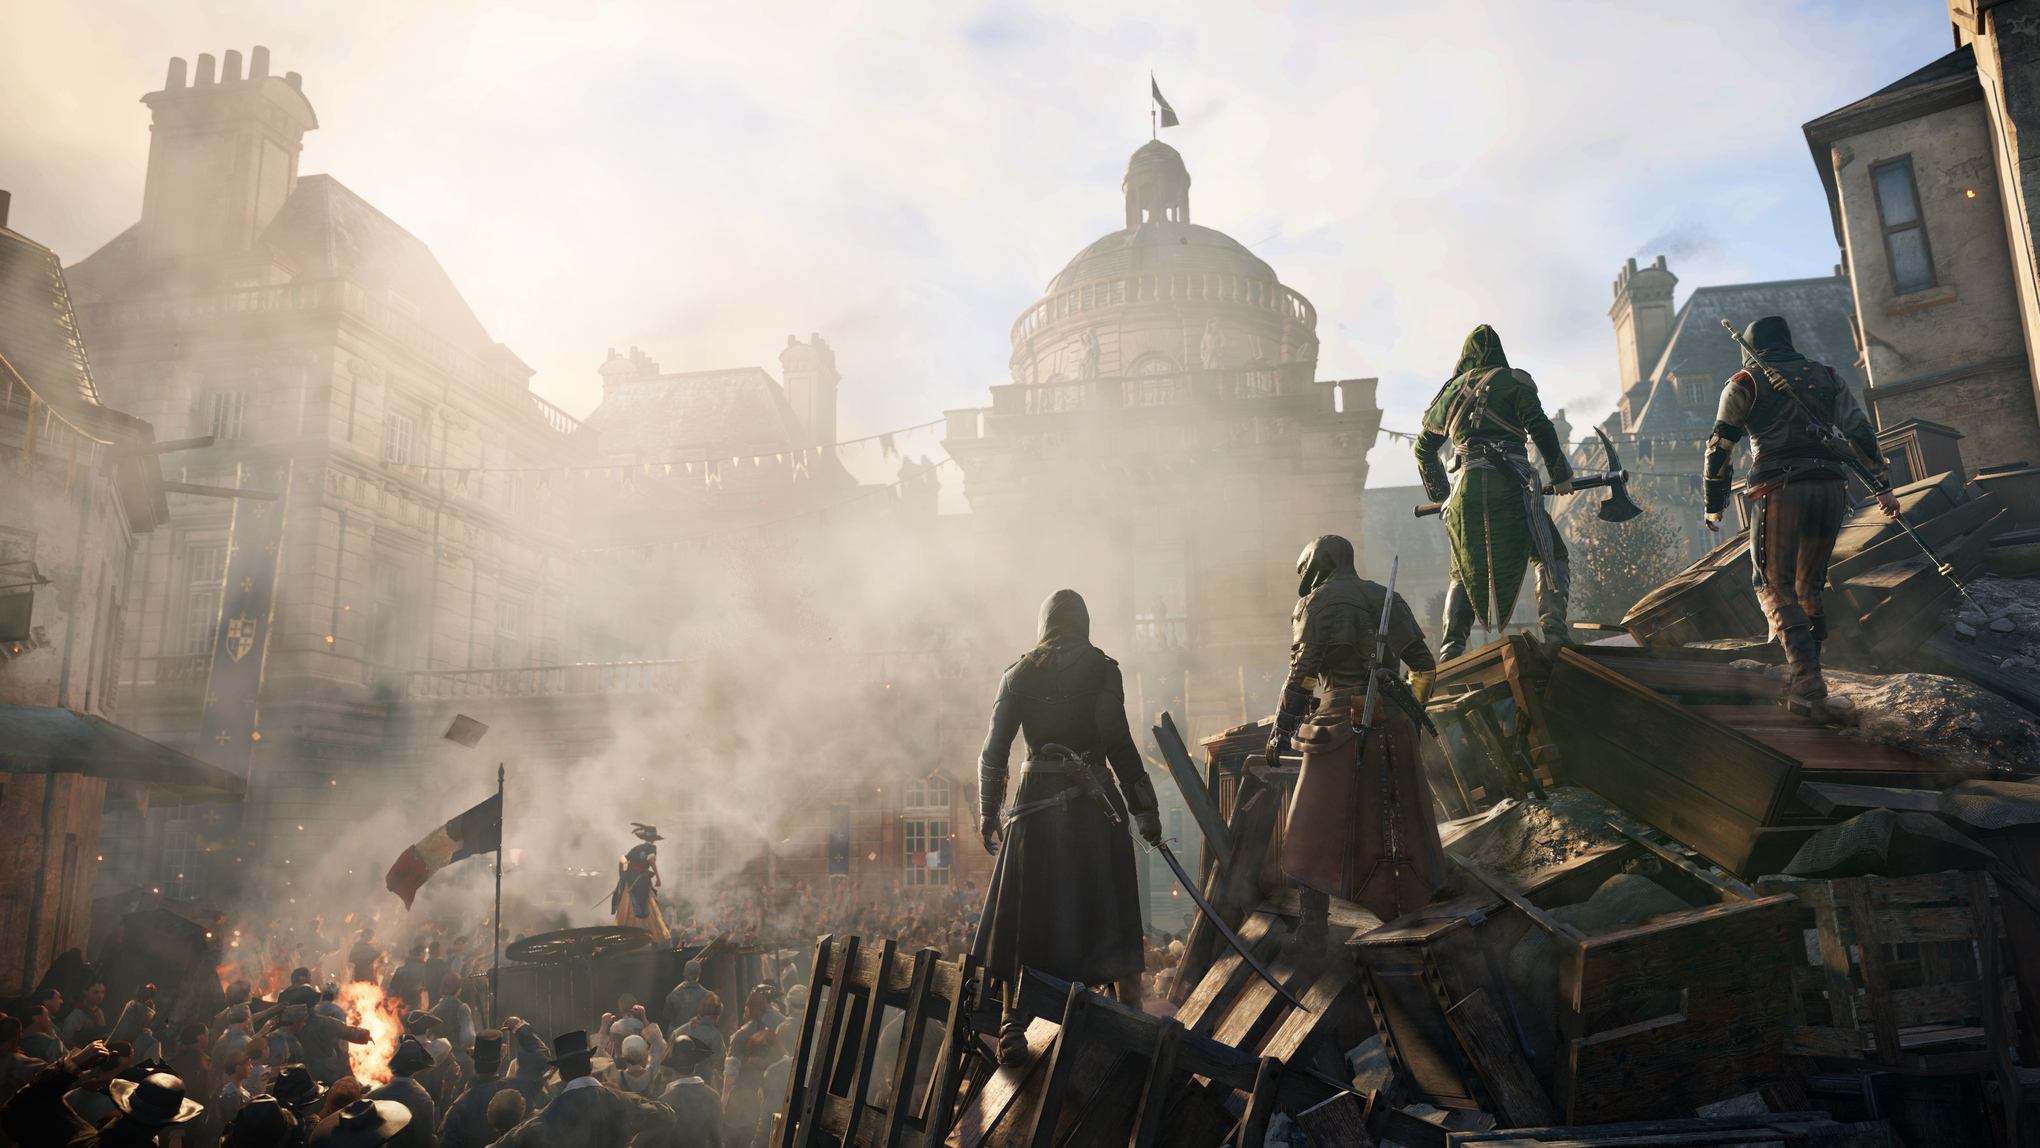 An Assassin's Creed game for PS3 and 360 could be revealed 'soon,' Ubisoft CEO says